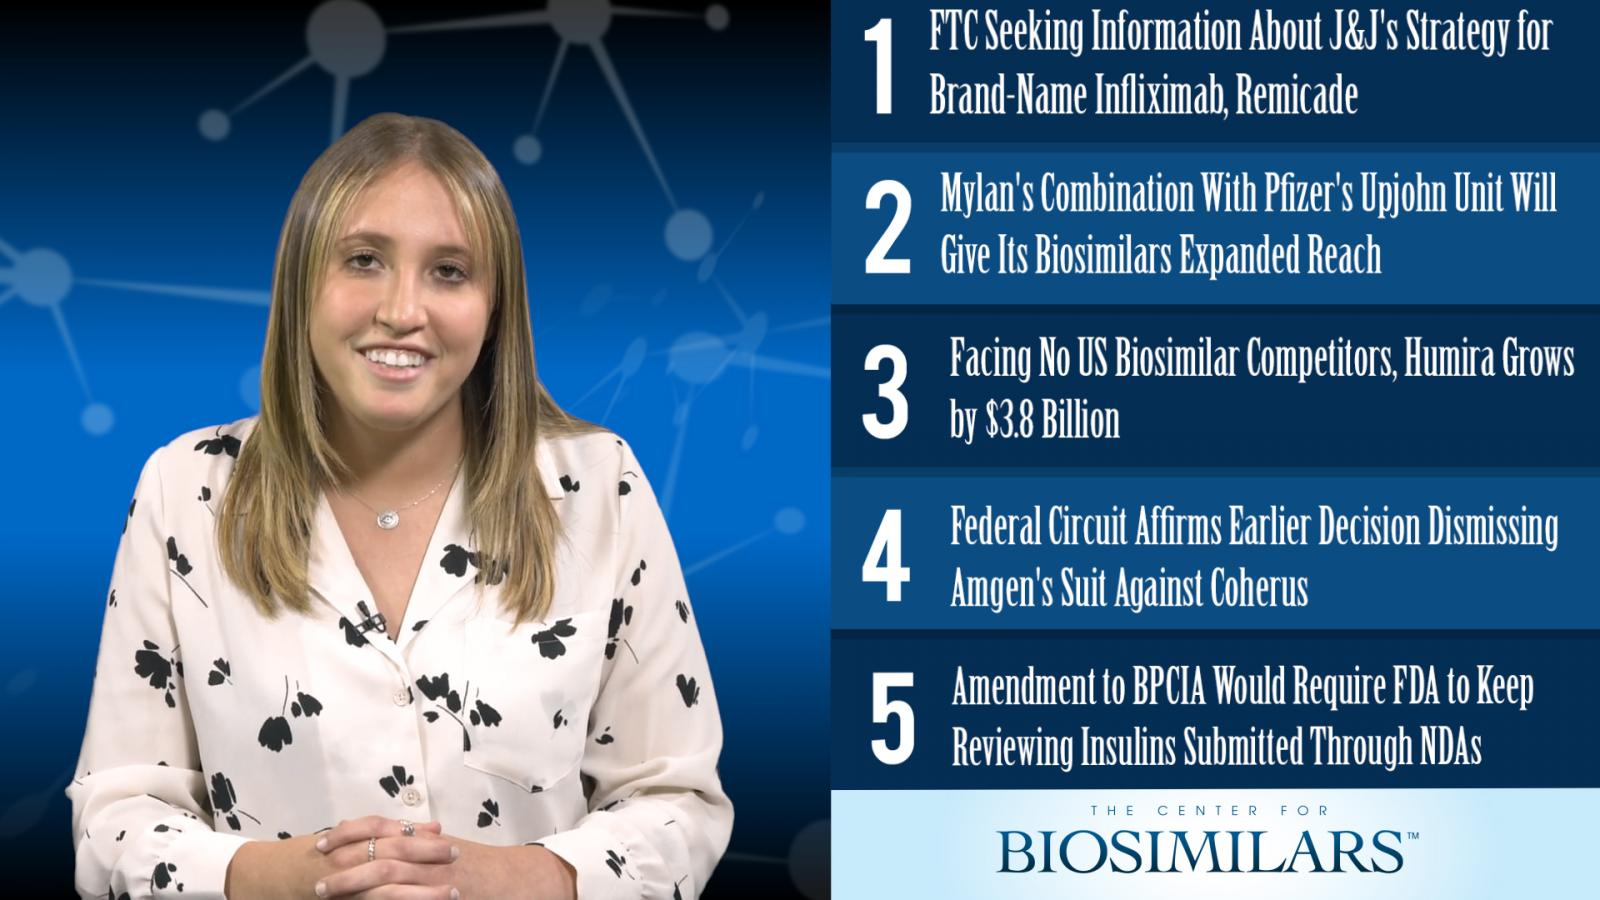 The Top 5 Biosimilars Articles for the Week of July 29